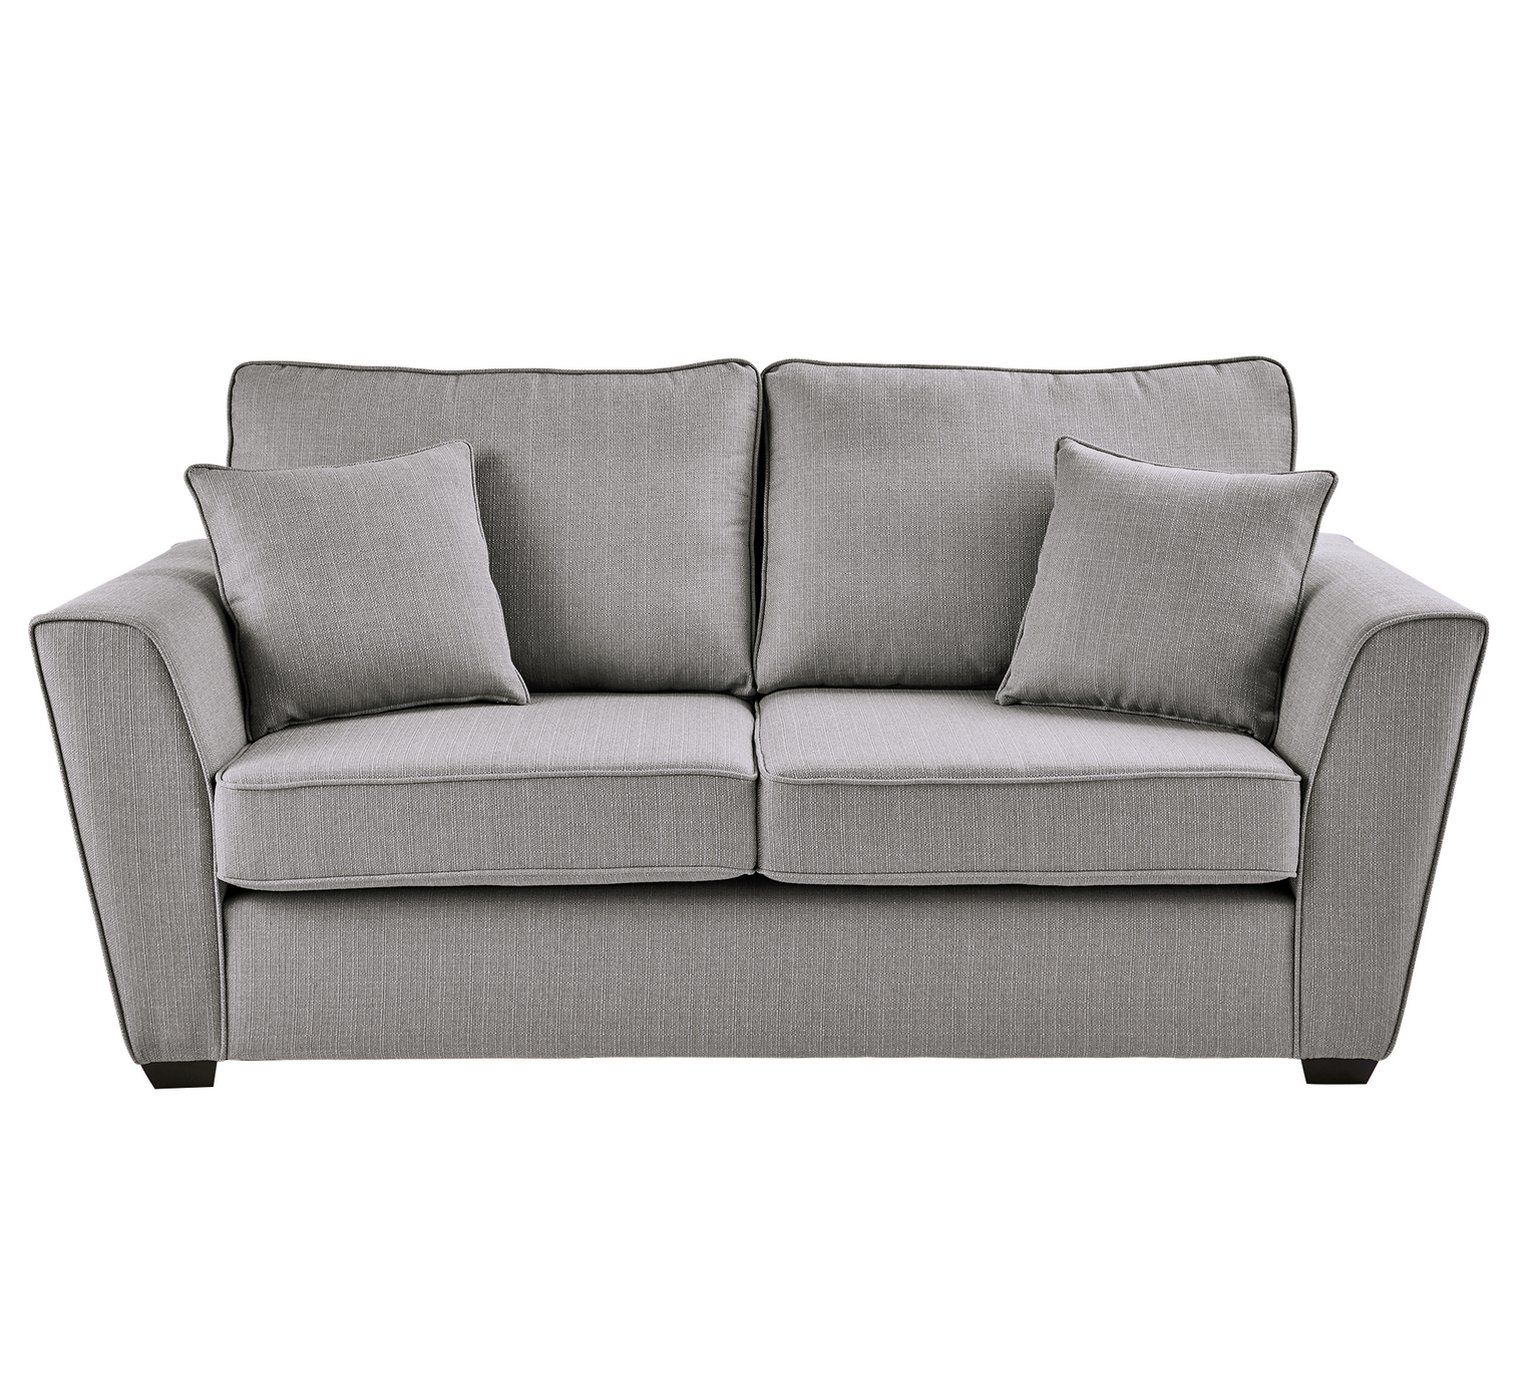 Amazing Buy Collection Renley 2 Seater Fabric Sofa Light Grey Bralicious Painted Fabric Chair Ideas Braliciousco